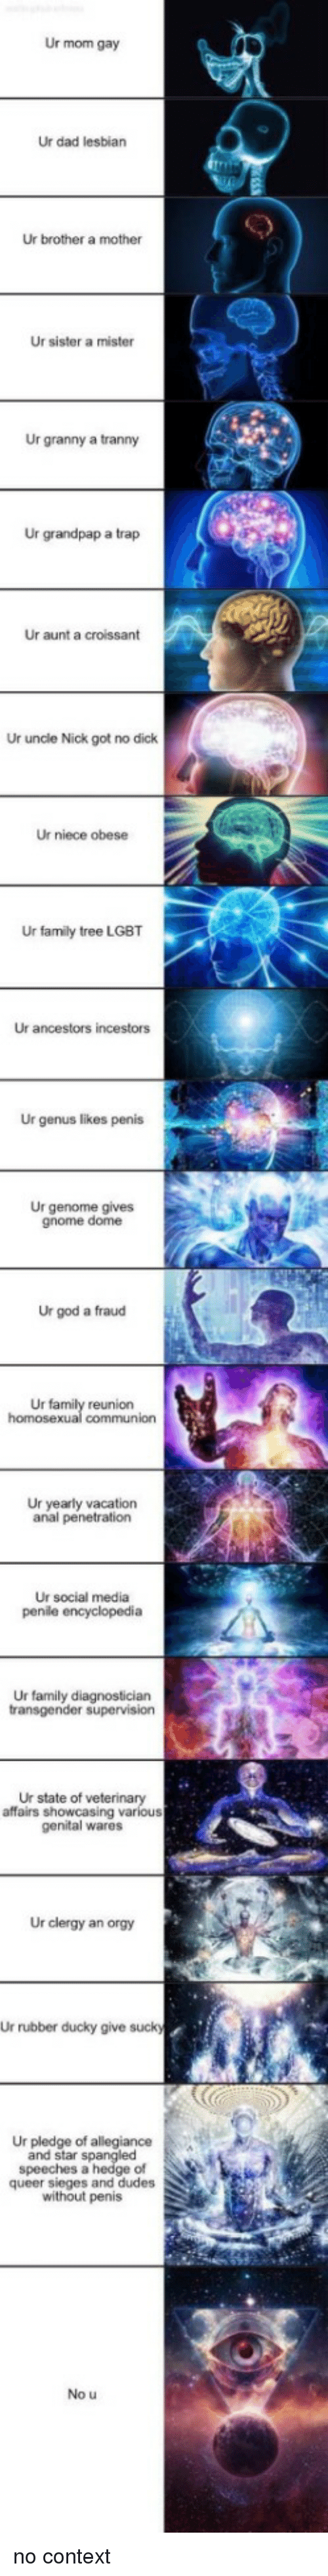 tranny: Ur mom gay  Ur dad lesbian  Ur brother a mother  Ur sister a mister  Ur granny a tranny  Ur grandpap a trap  Ur aunt a croissant  Ur uncle Nick got no dick  Ur niece obese  Ur family tree LGBT  Ur ancestors incestors  Ur genus likes penis  Ur genome gives  gnome dome  Ur god a fraud  Ur  reunion  Ur yearly vacation  anal penetration  Ur social media  Ur family diagnostician  Ur state of veterinary  affairs showcasing various  genital wares  Ur clergy an orgy  Ur rubber ducky give suck  Ur pledge of allegiance  and star spangled  speeches a hedge of  queer sieges and dudes  without penis  No u no context